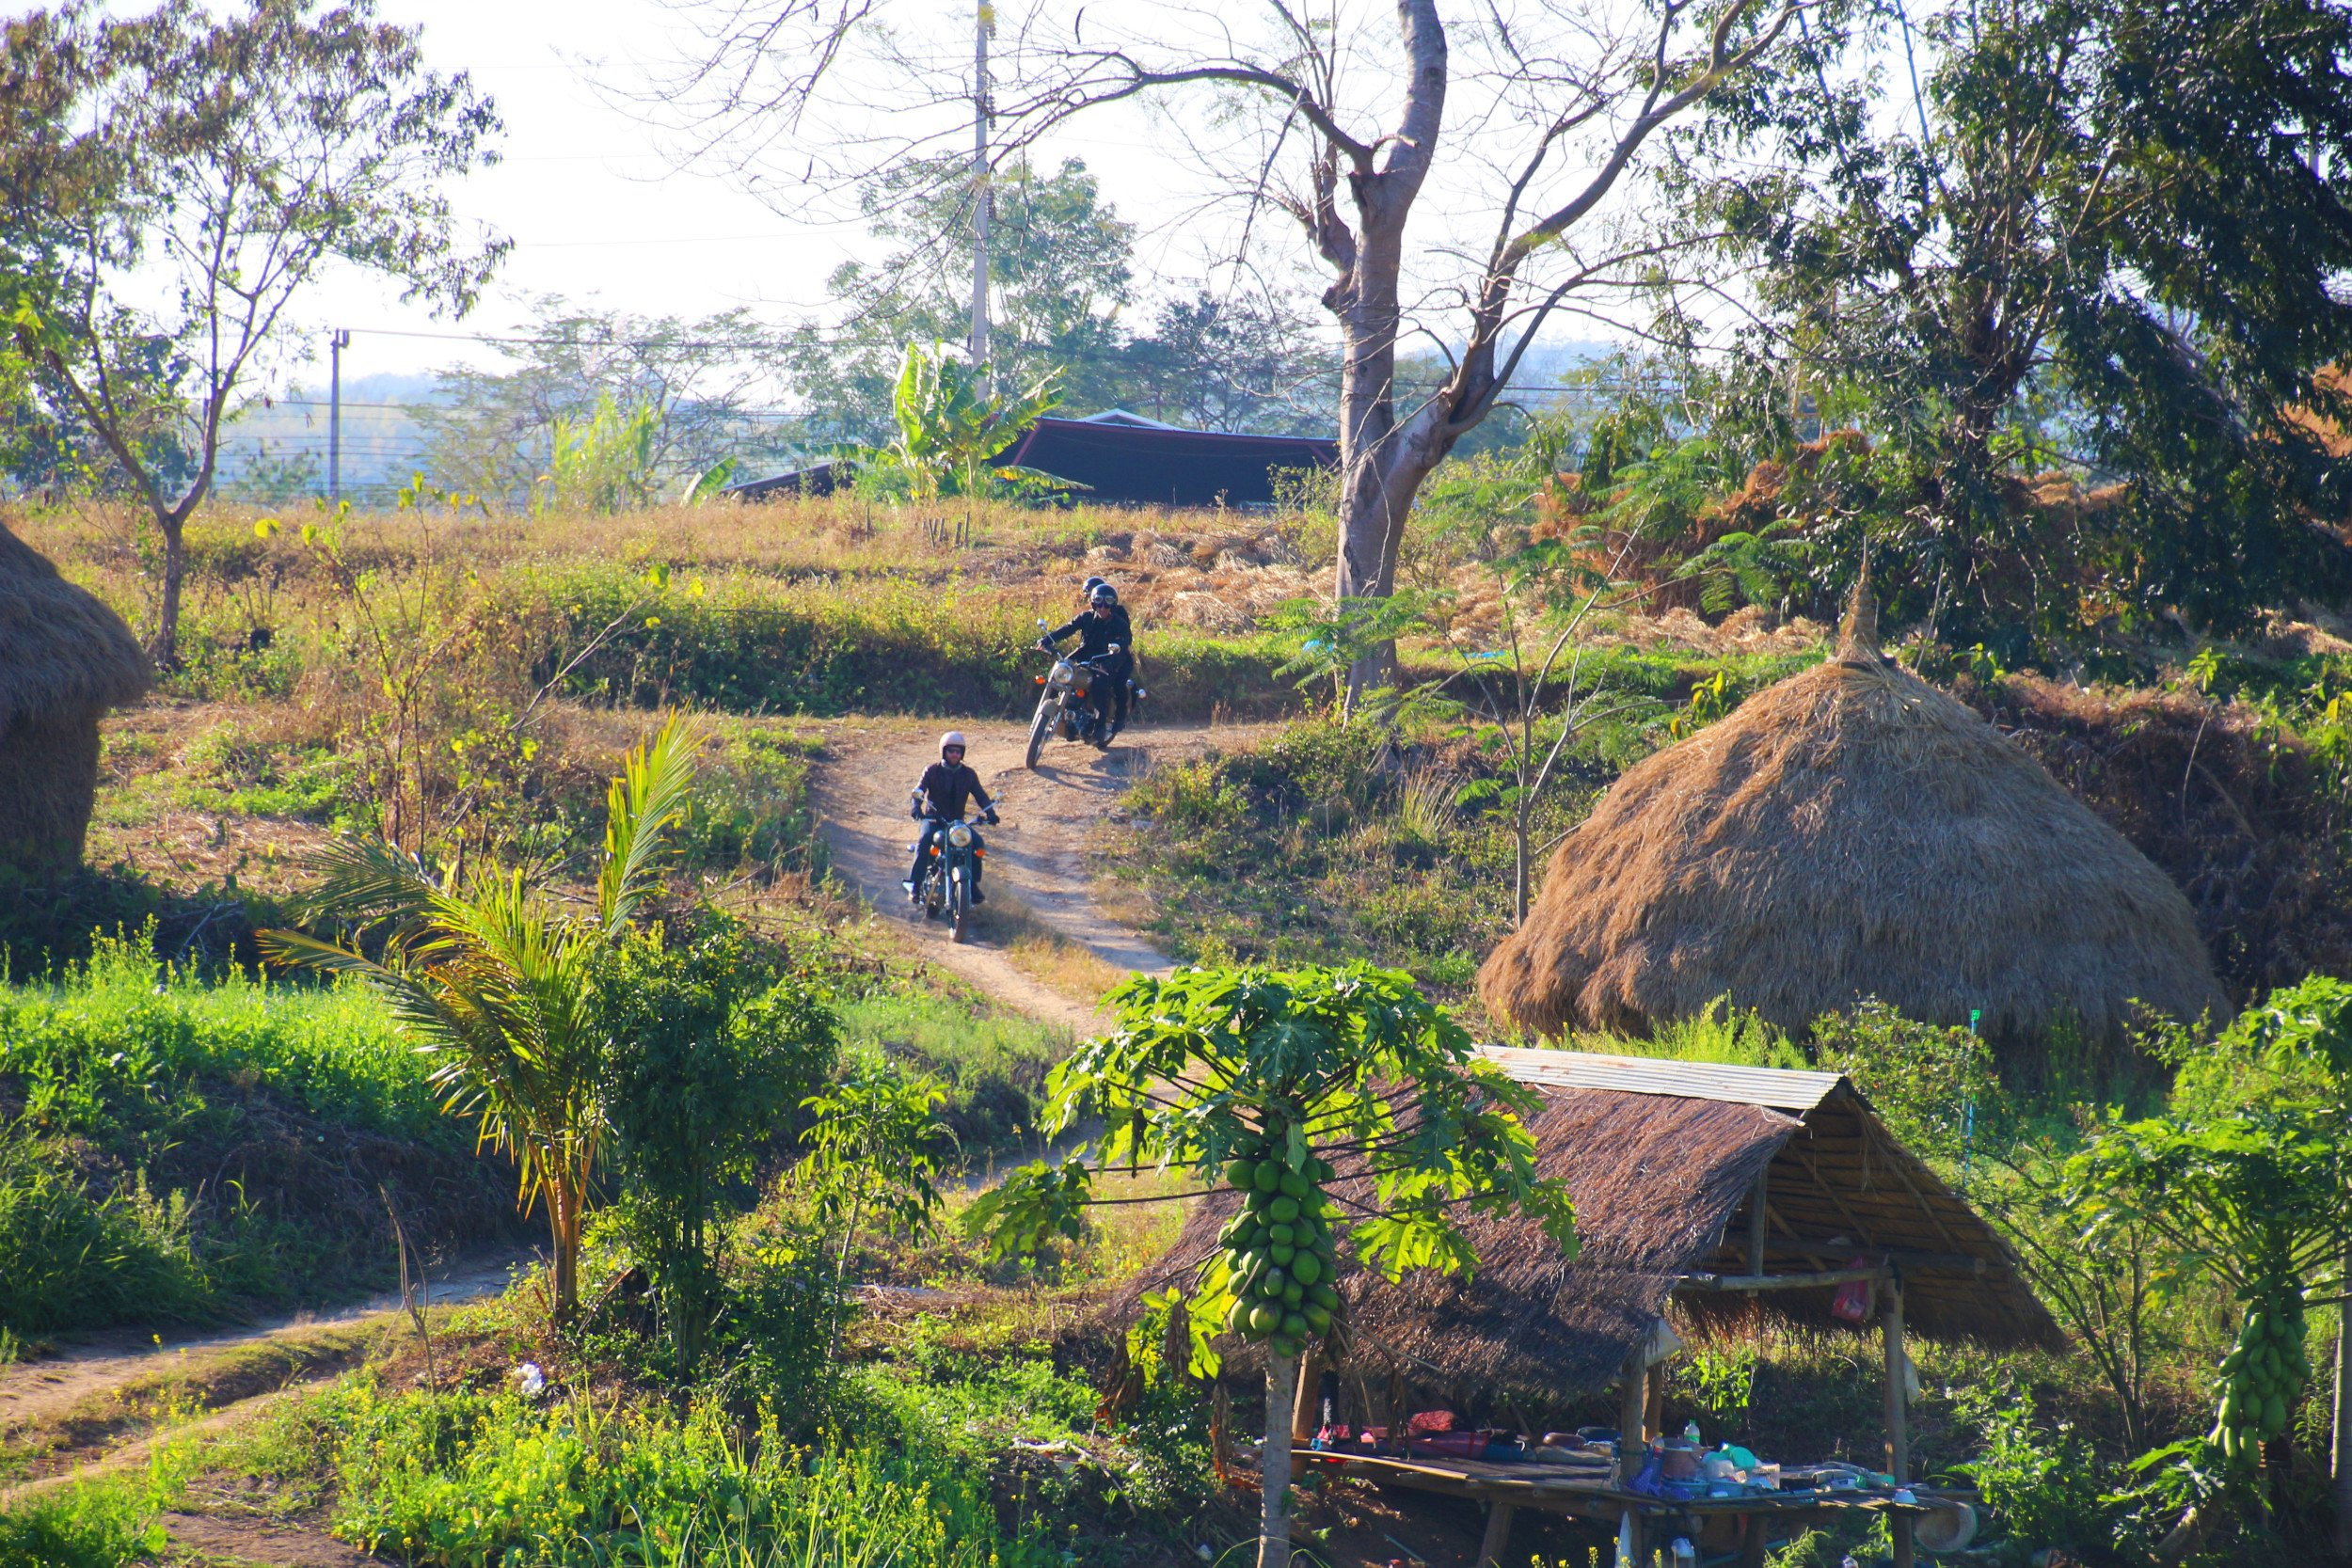 Motorcycle road trip Thailand & Laos - On the Edge of Siam Kingdom